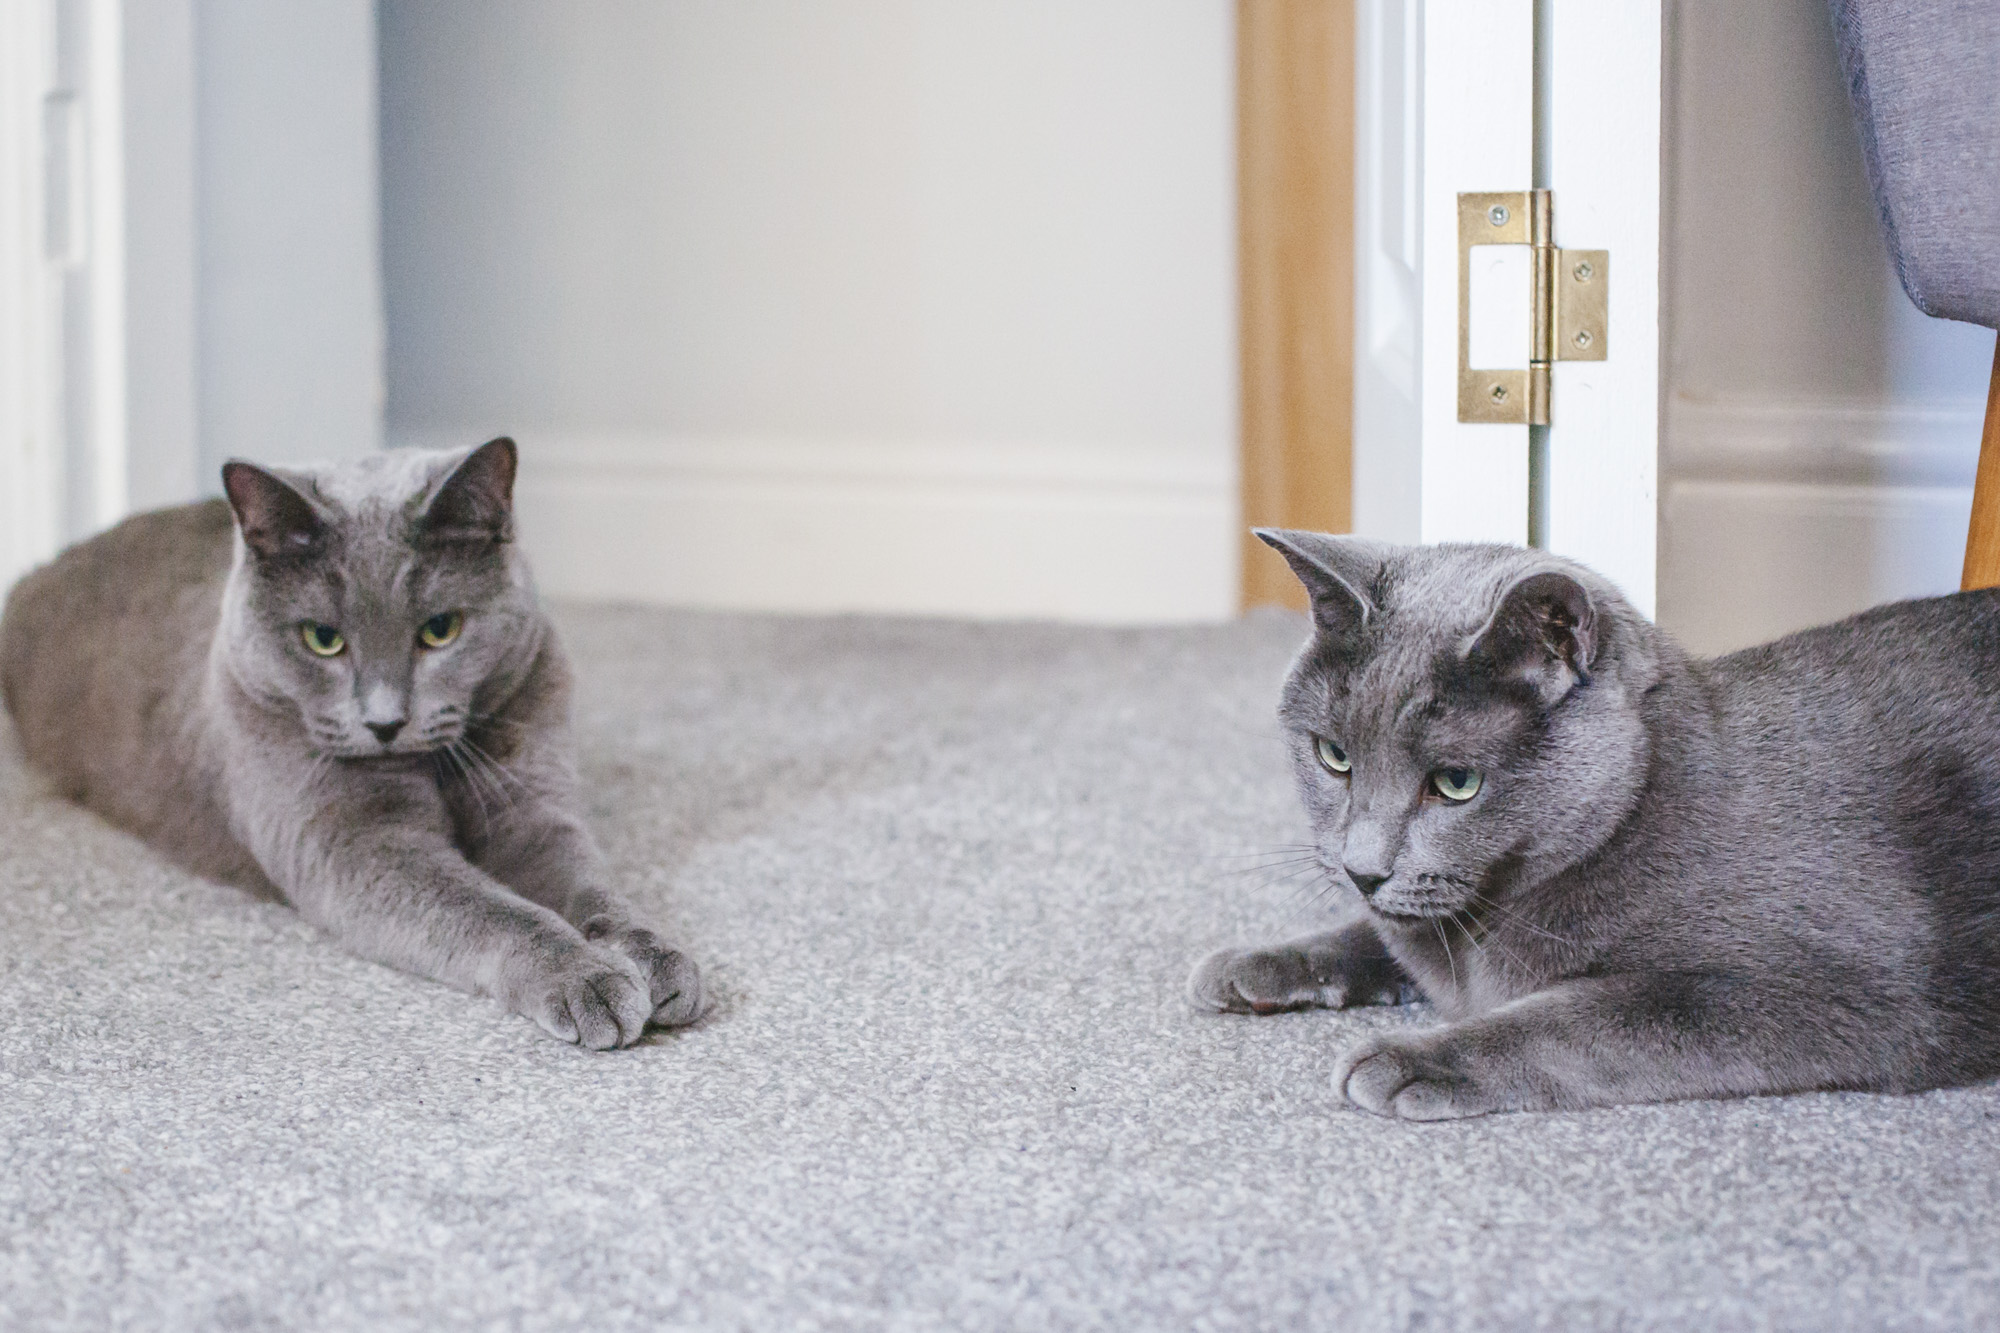 Look at these BEAUTIFUL sister kitties! Veronica and Matilda are residing in England (our RUFFined photog went on a jaunt across the pond) and are three-year-old pure-bred Russian Blue cats. They are from the Warwick Russians breeder on the south coast of England. The two sisters were the only two from their litter which is very ~rare~. The sisters like to lounge in the sunlight (when the sun is shining in England), spend time with their family with a Sunday afternoon cuddle puddle, and getting their fur brushed. They dislike it when their litter boxes are anything but sparkly clean because they are little princesses. You can follow these English kitties on Instagram at @agents_meow.{ }The Seattle RUFFined Spotlight is a weekly profile of local pets living and loving life in the PNW. If you or someone you know has a pet you'd like featured, email us at hello@seattlerefined.com or tag #SeattleRUFFined and your furbaby could be the next spotlighted! (Image: Sunita Martini / Seattle Refined).